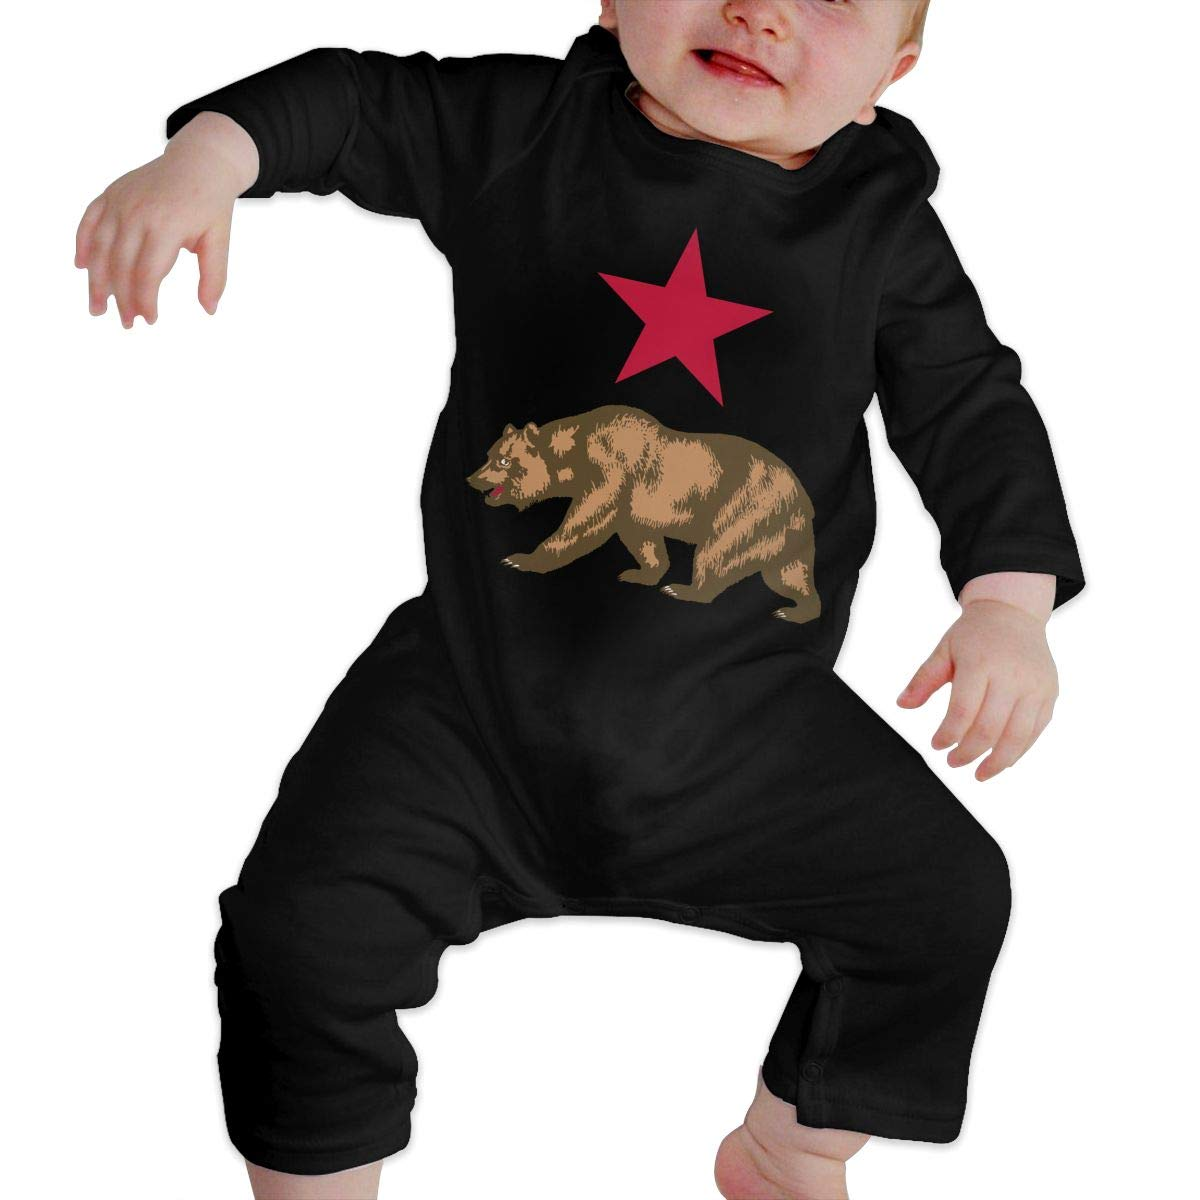 Coat of Arms of East Timor Unisex Long Sleeve Baby Gown Baby Bodysuit Unionsuit Footed Pajamas Romper Jumpsuit